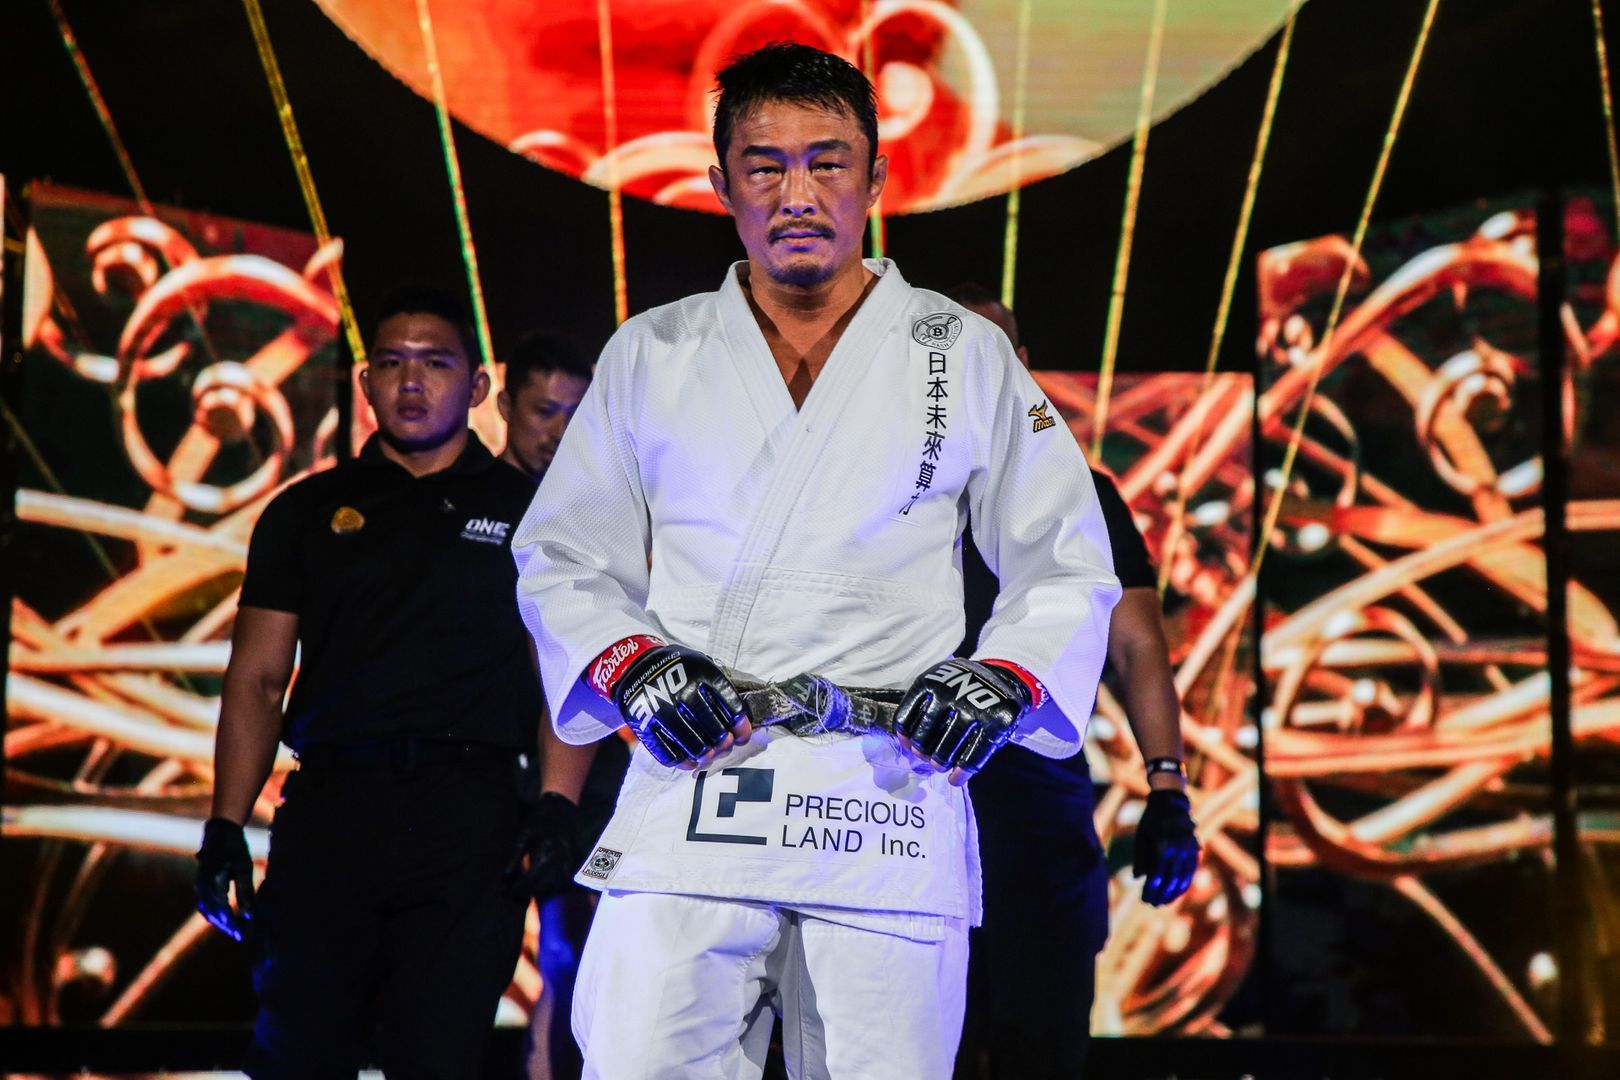 Yoshihiro Akiyama makes his signature walk down the ramp at ONE: LEGENDARY QUEST in China.